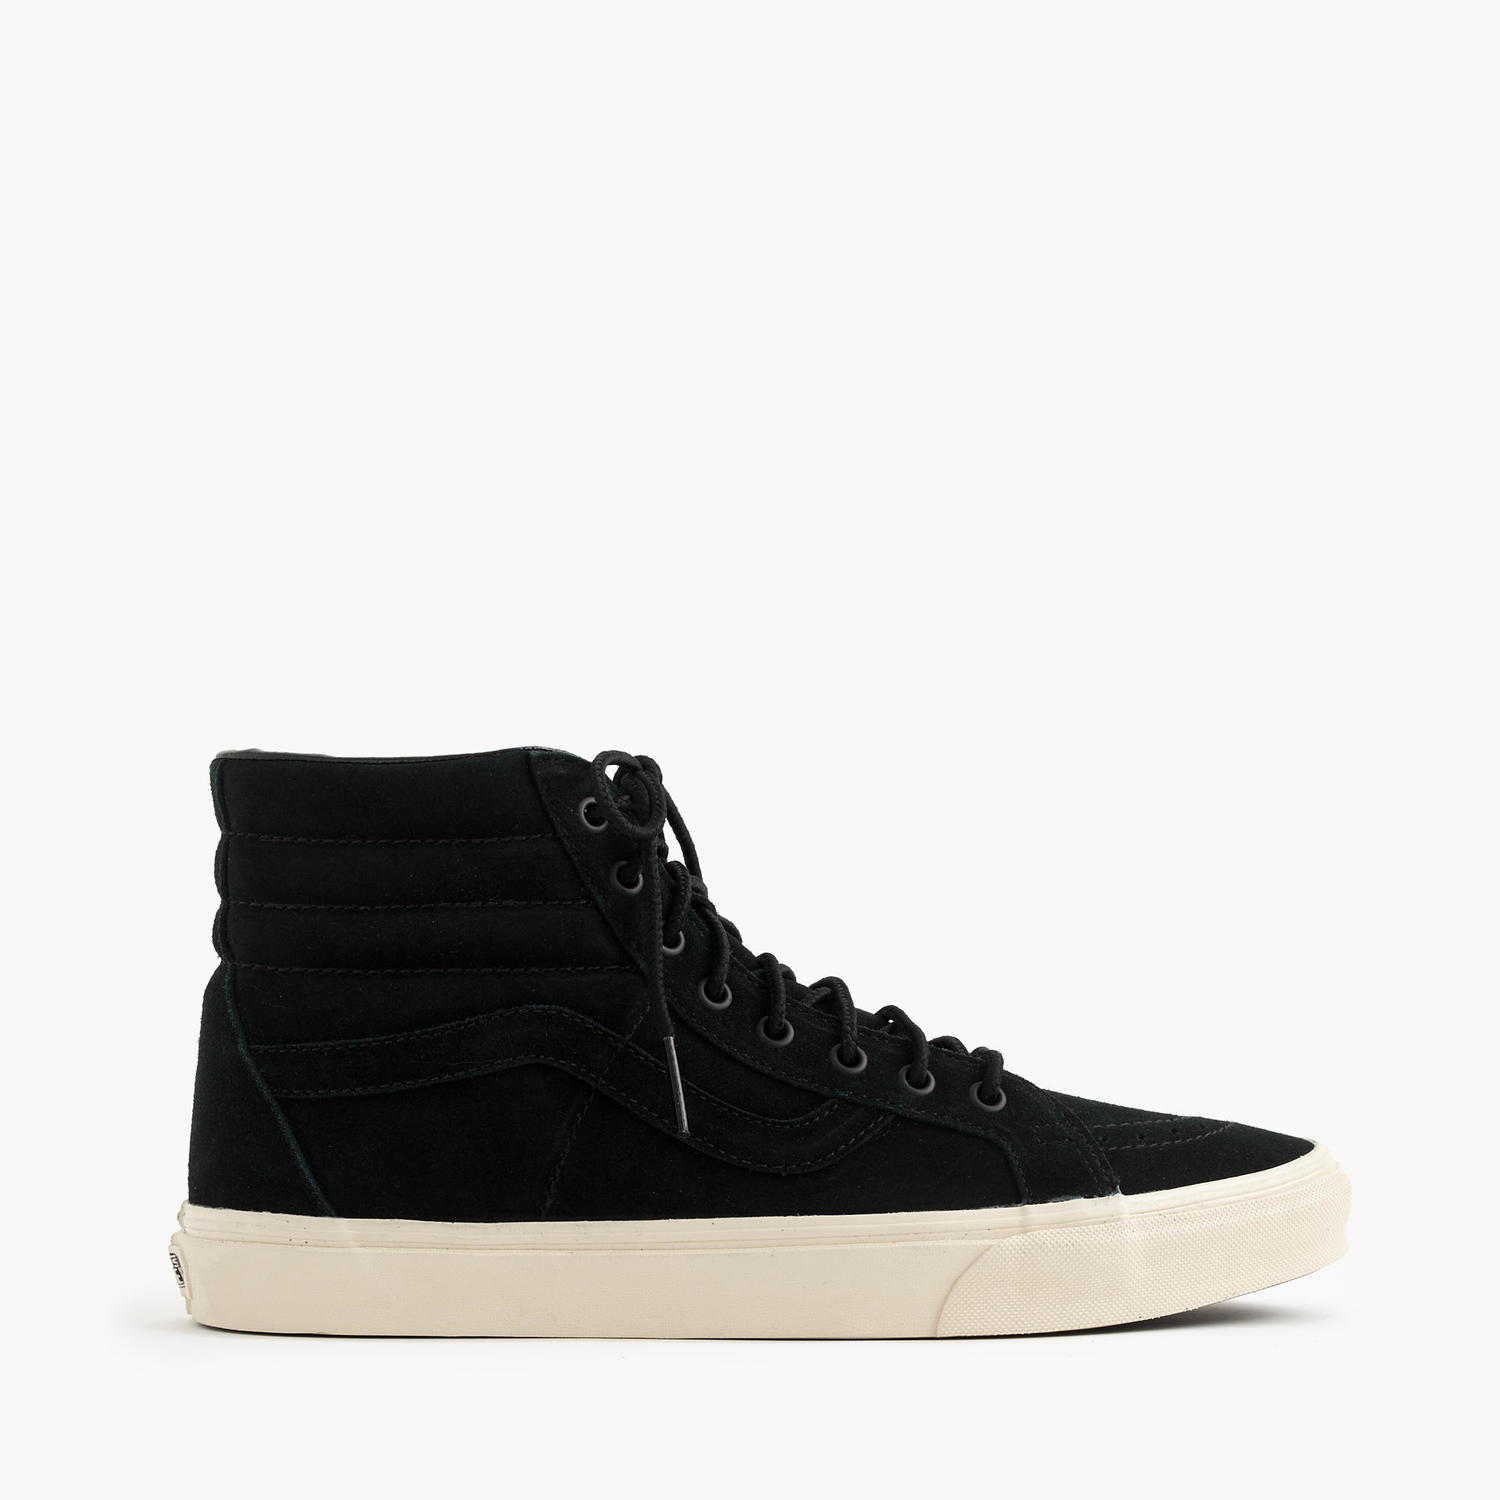 J. Crew for Vans Tonal Sk8 Hi Suede Pack — strictly waffles. 95f5b66c5b93